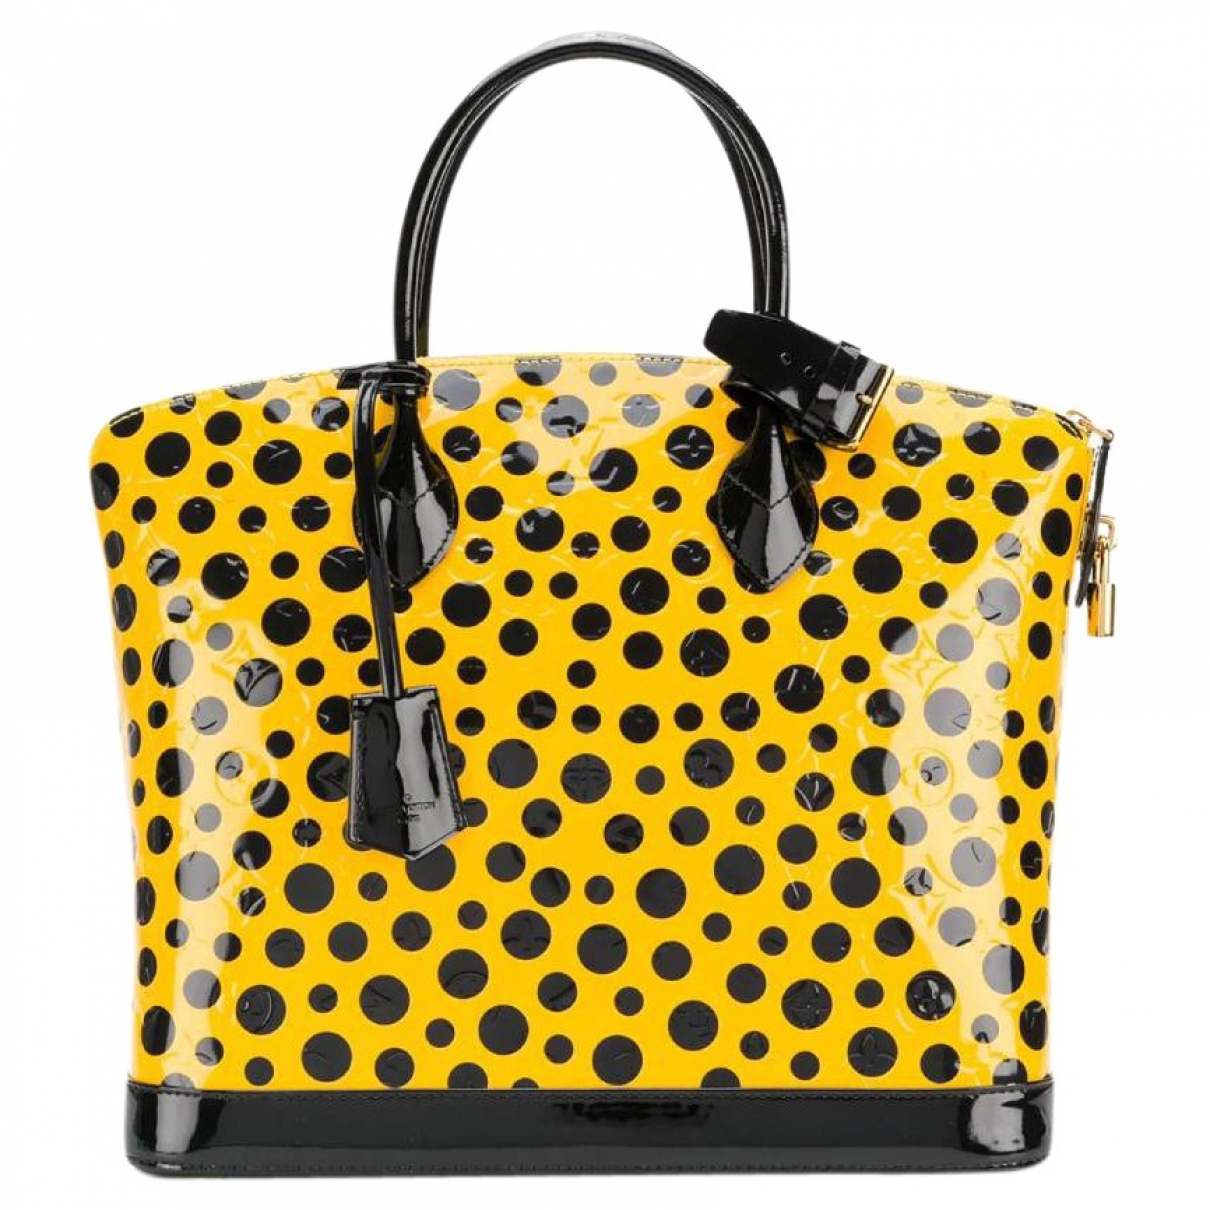 Louis Vuitton Lockit Vertical Yellow Patent leather handbag for Women \N